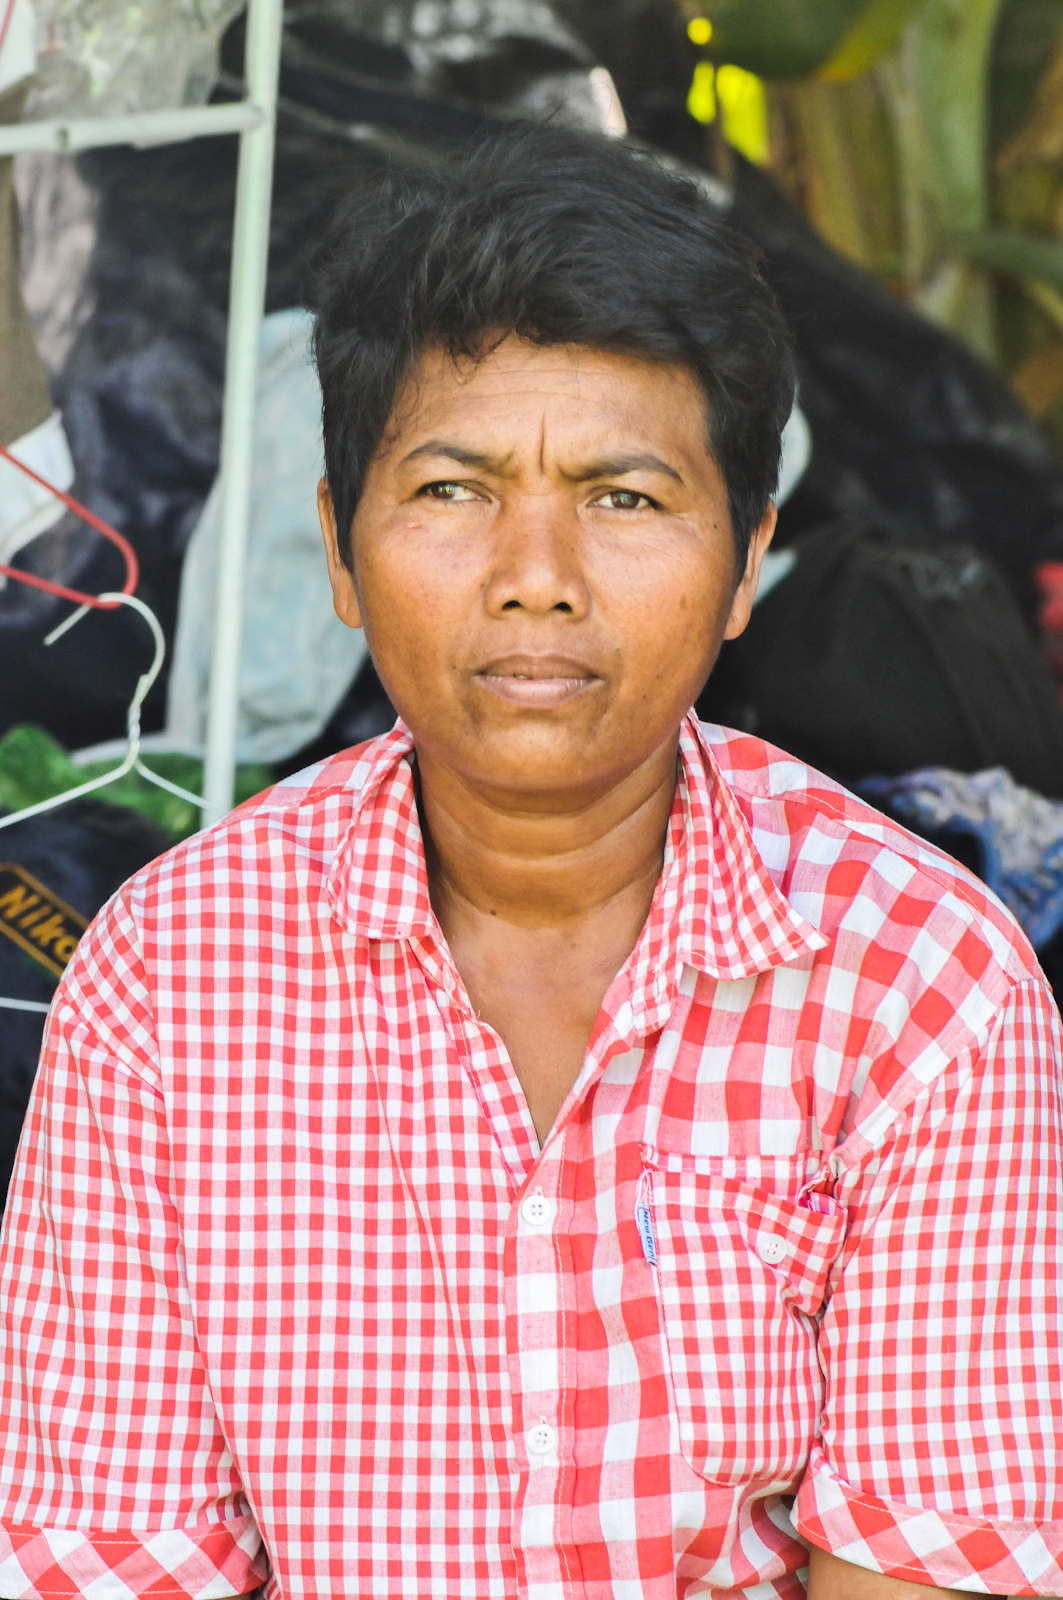 Women in Stung meanchey